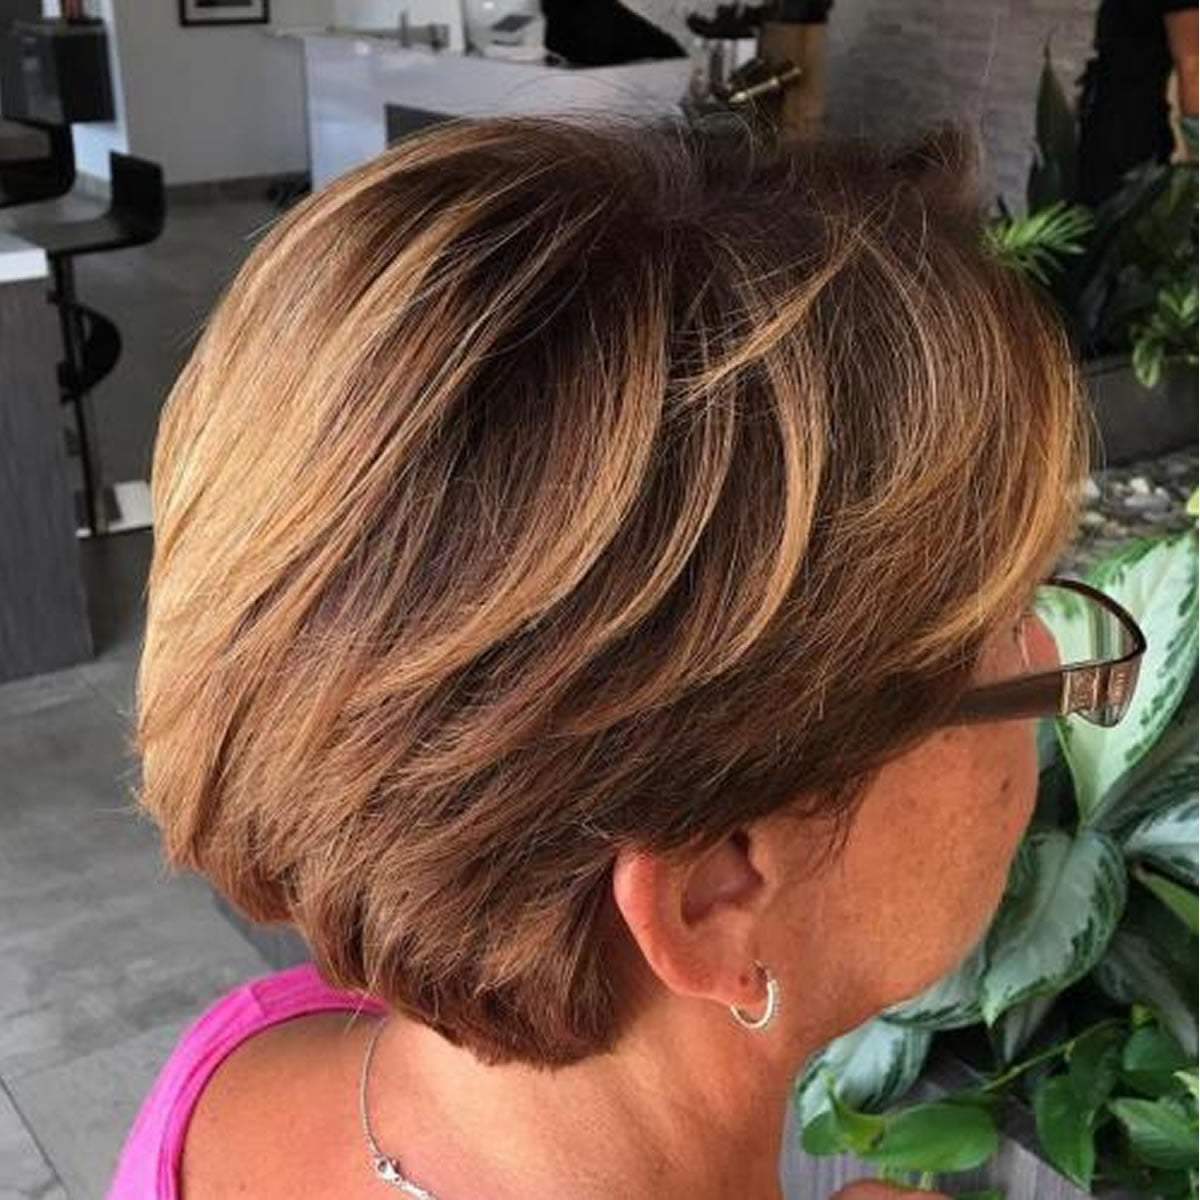 2020 Haircuts For Older Women Over 50 New Trend Hair